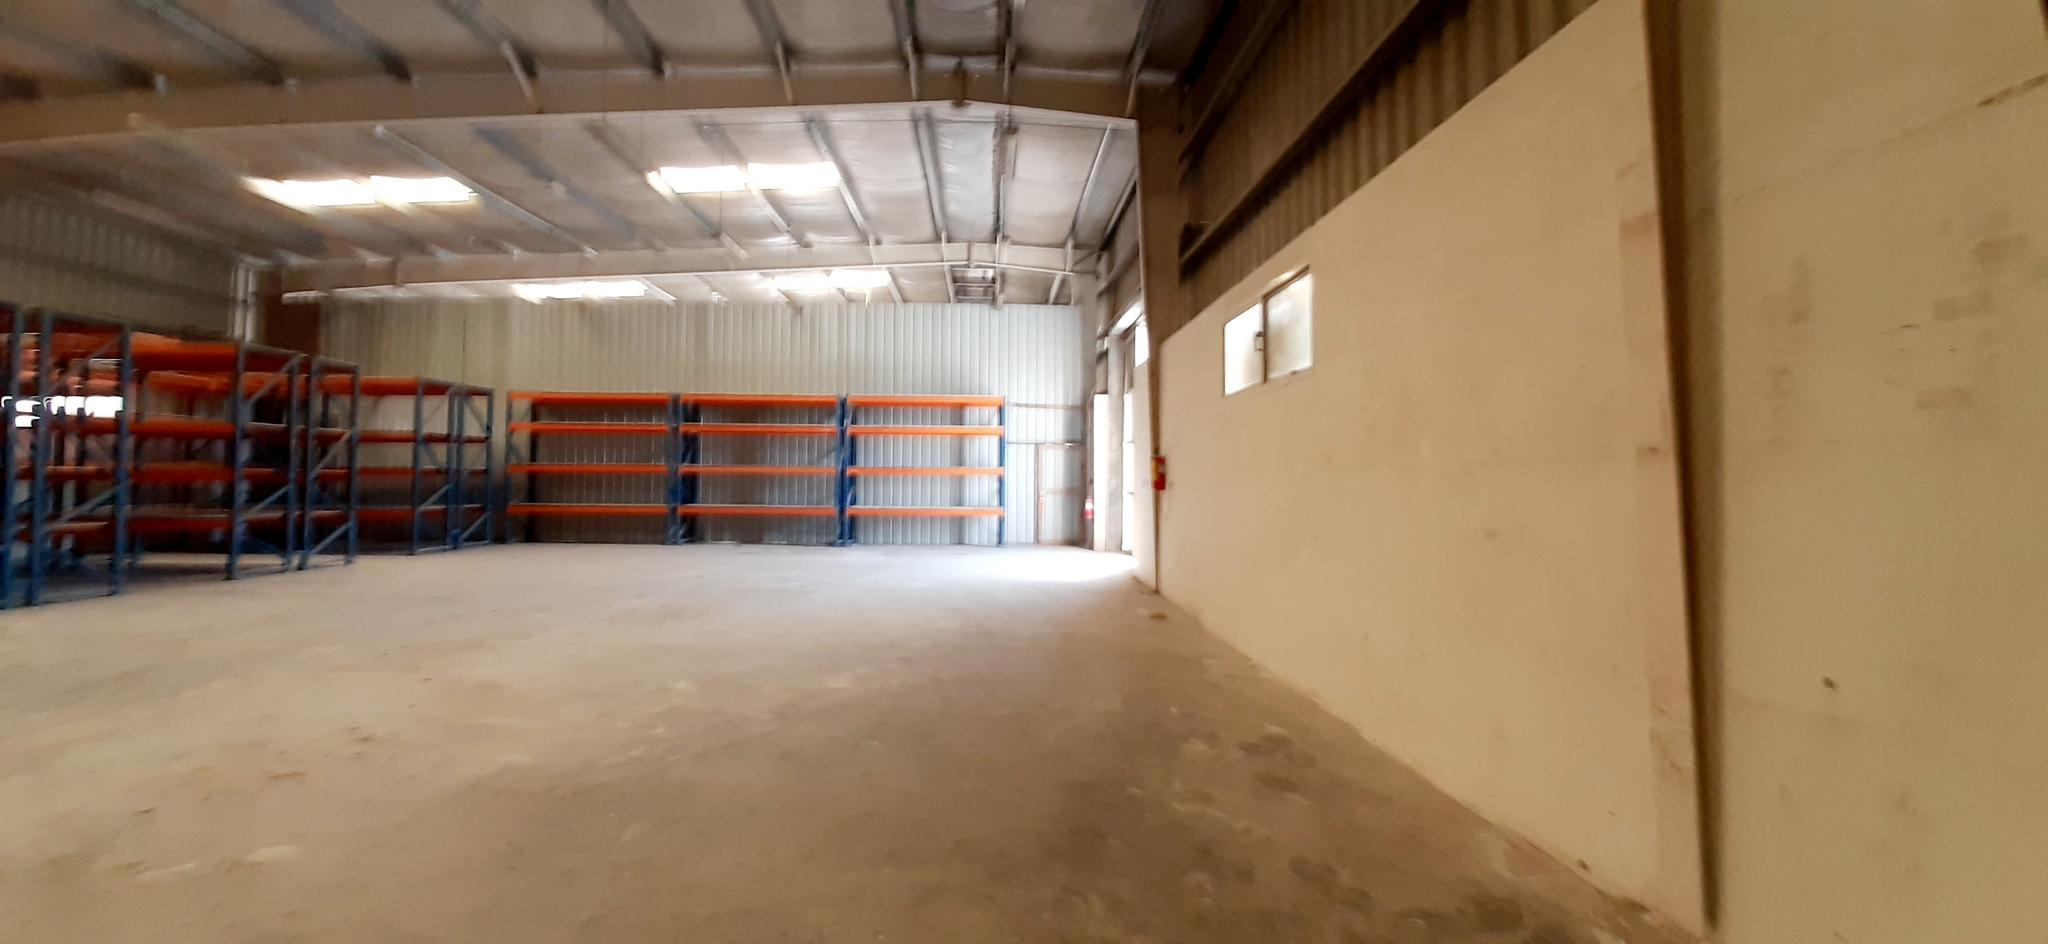 250 SQM GENERAL WAREHOUSE FOR RENT IN INDUSTRIAL A